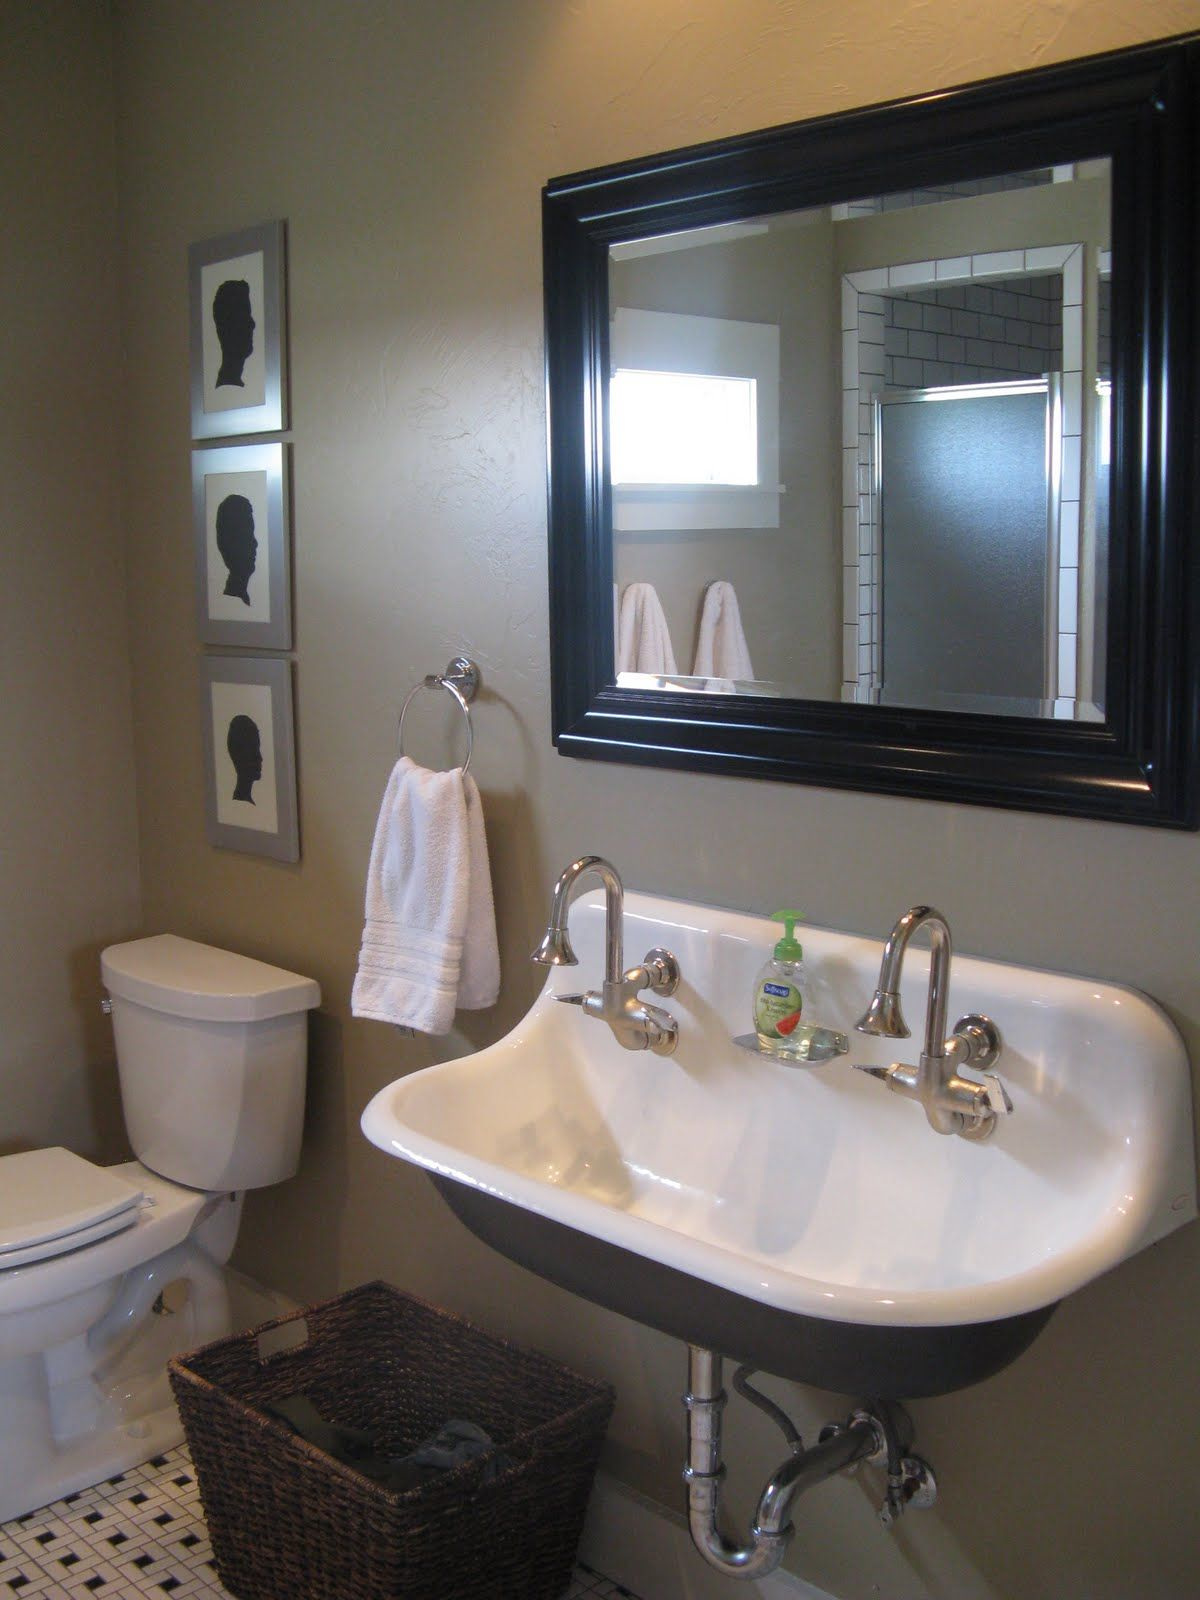 Brockway wash sink and Cannock faucet by Kohler